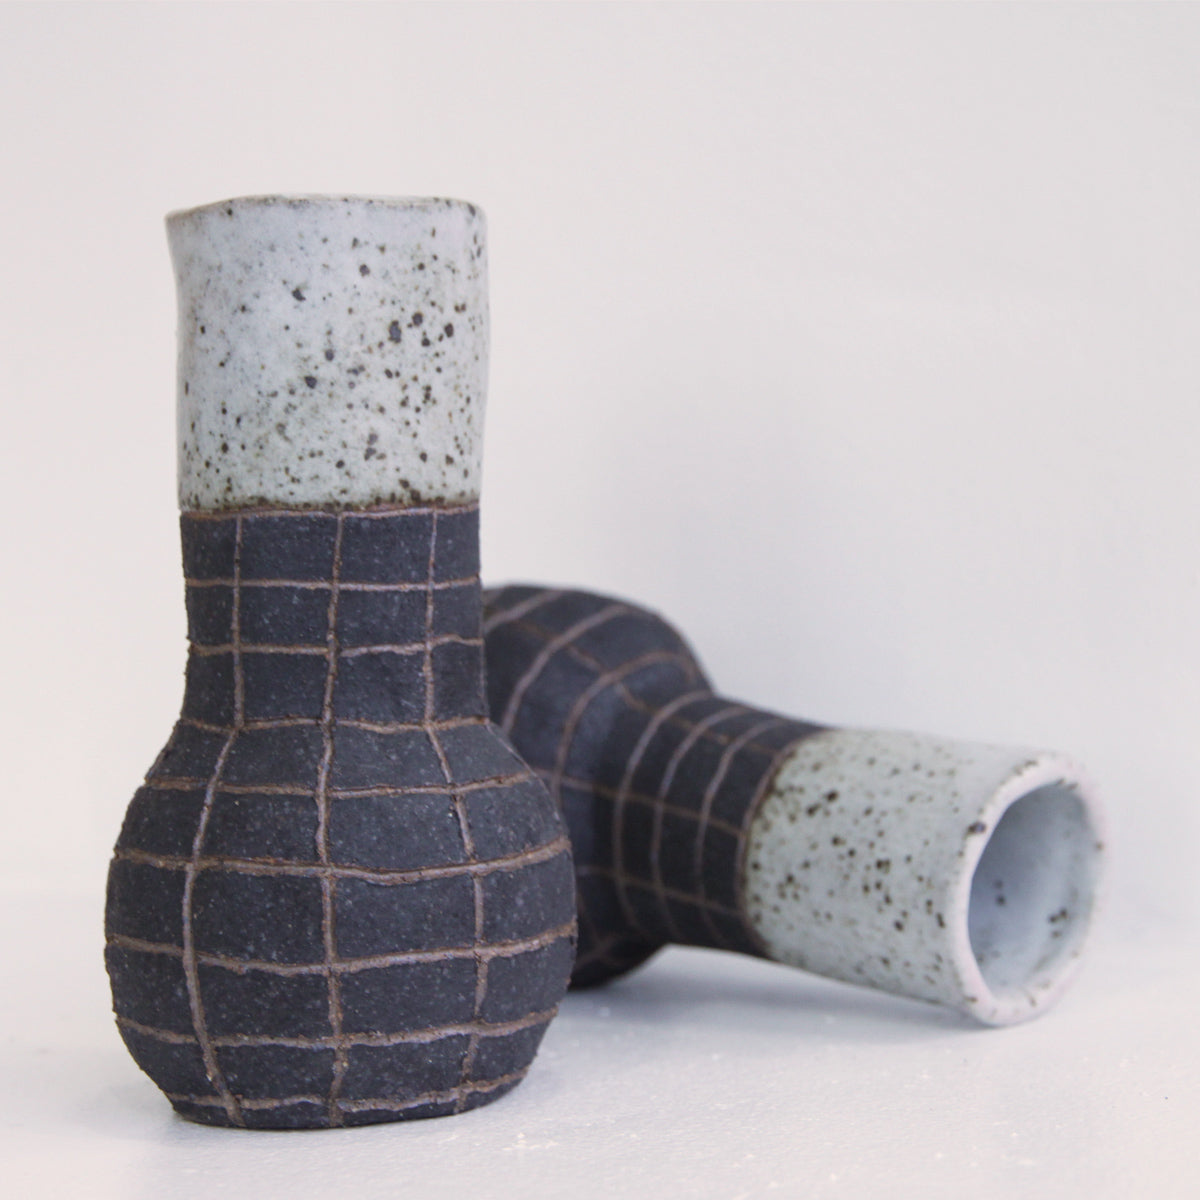 Tokkuri Grid Stem Vase | Chie Fujii - CHIECO Ceramics | Chie Fujii - CHIECO Ceramics | Los Angeles, CA at Sustain - Gallery and Shop - Chicago, IL